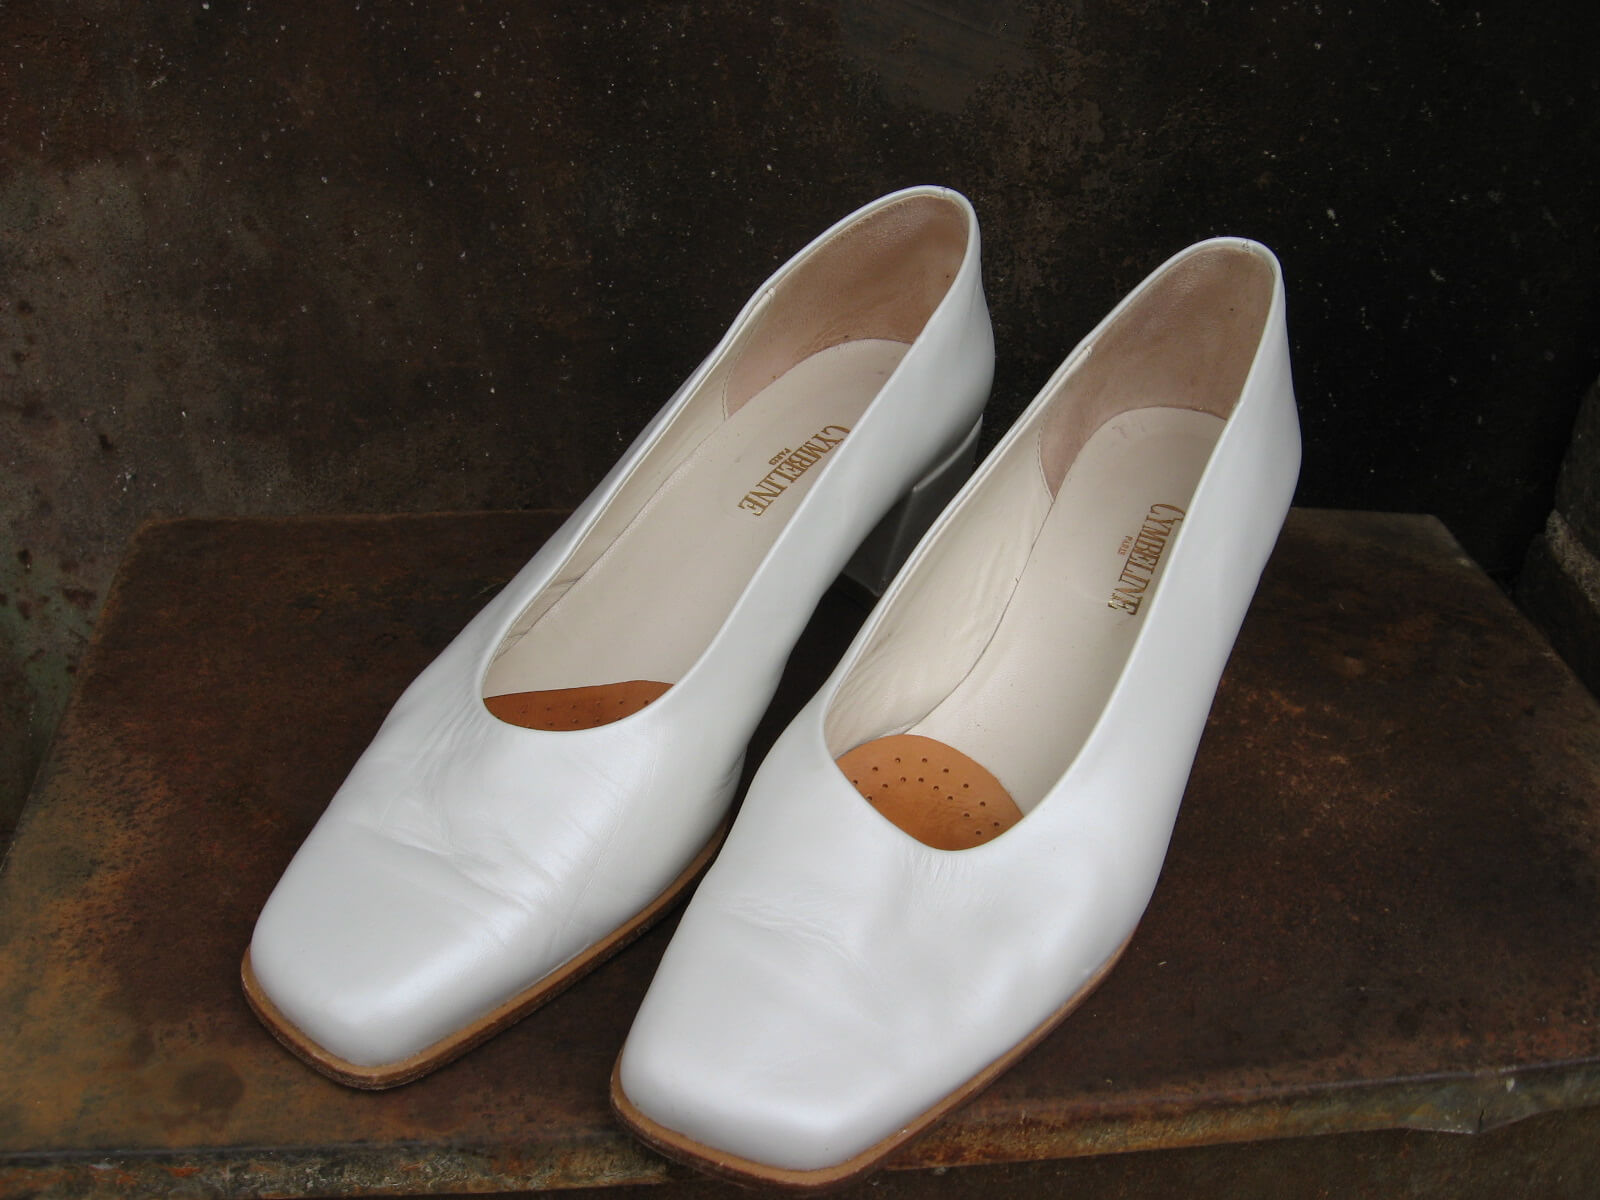 Cymbeline Paris Wedding Shoes white square toe at PumpjackPiddlewick